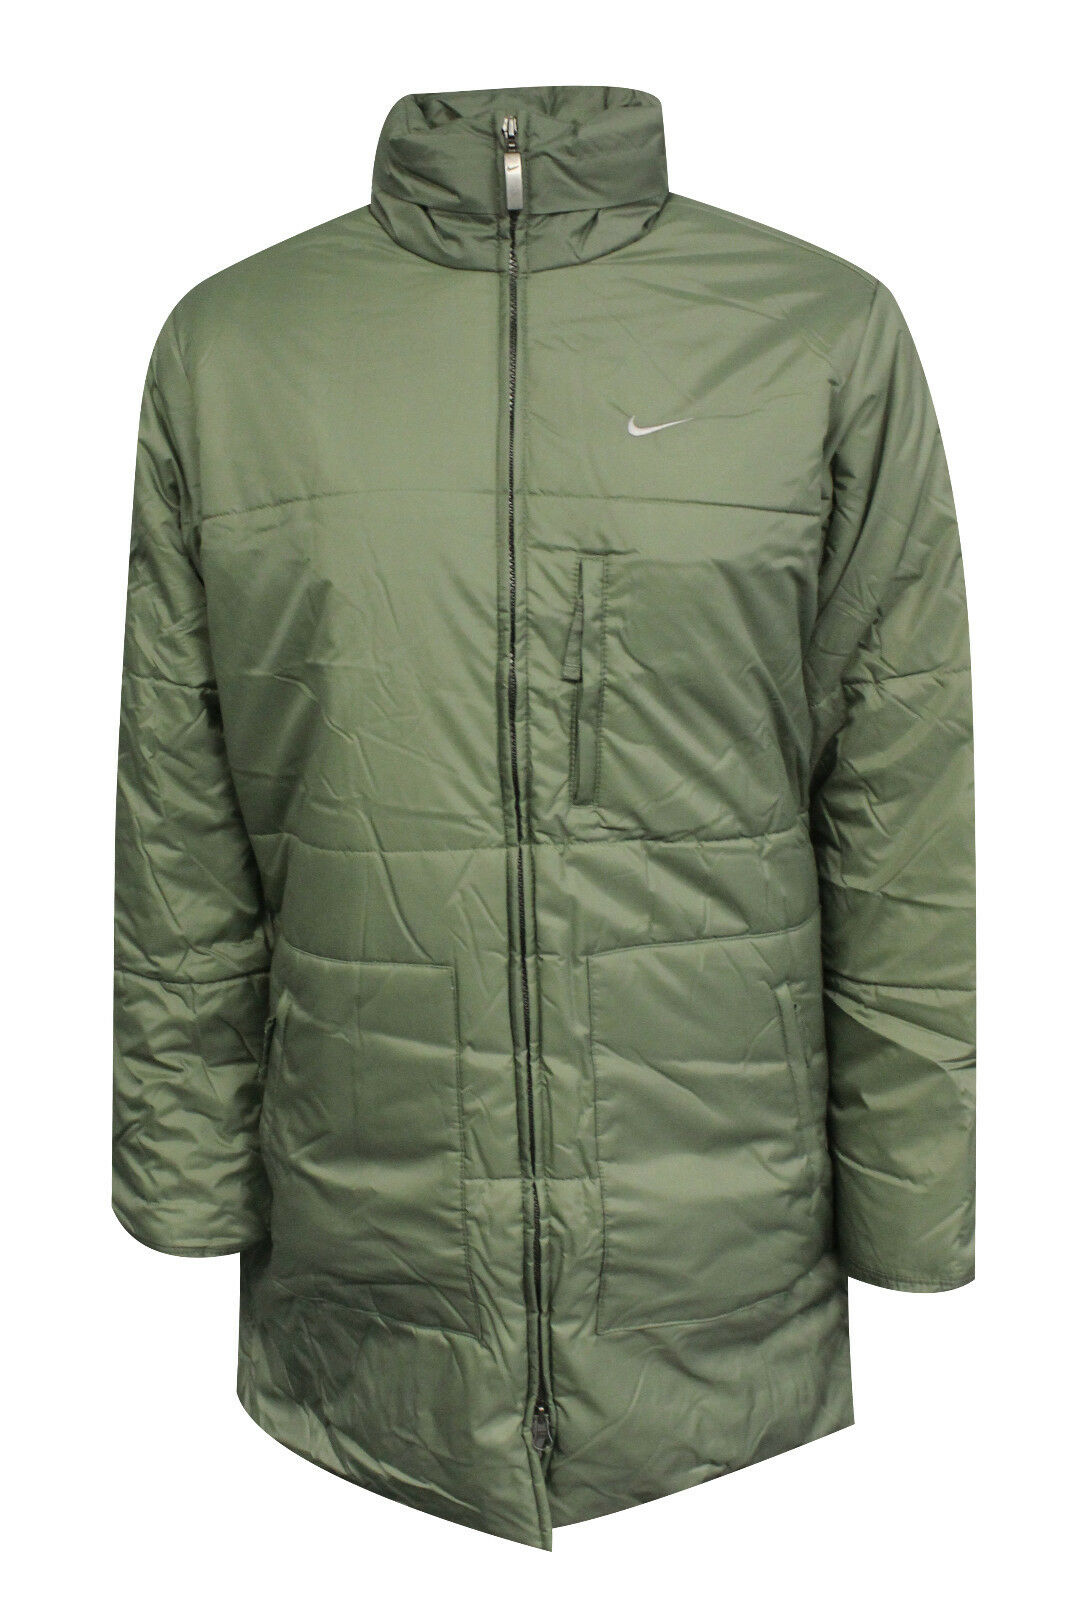 587e65a8f9f0 Details about Nike Womens Mid Length Zip Up Coat Funnel Neck Khaki Jacket  261421 302 OPPM1